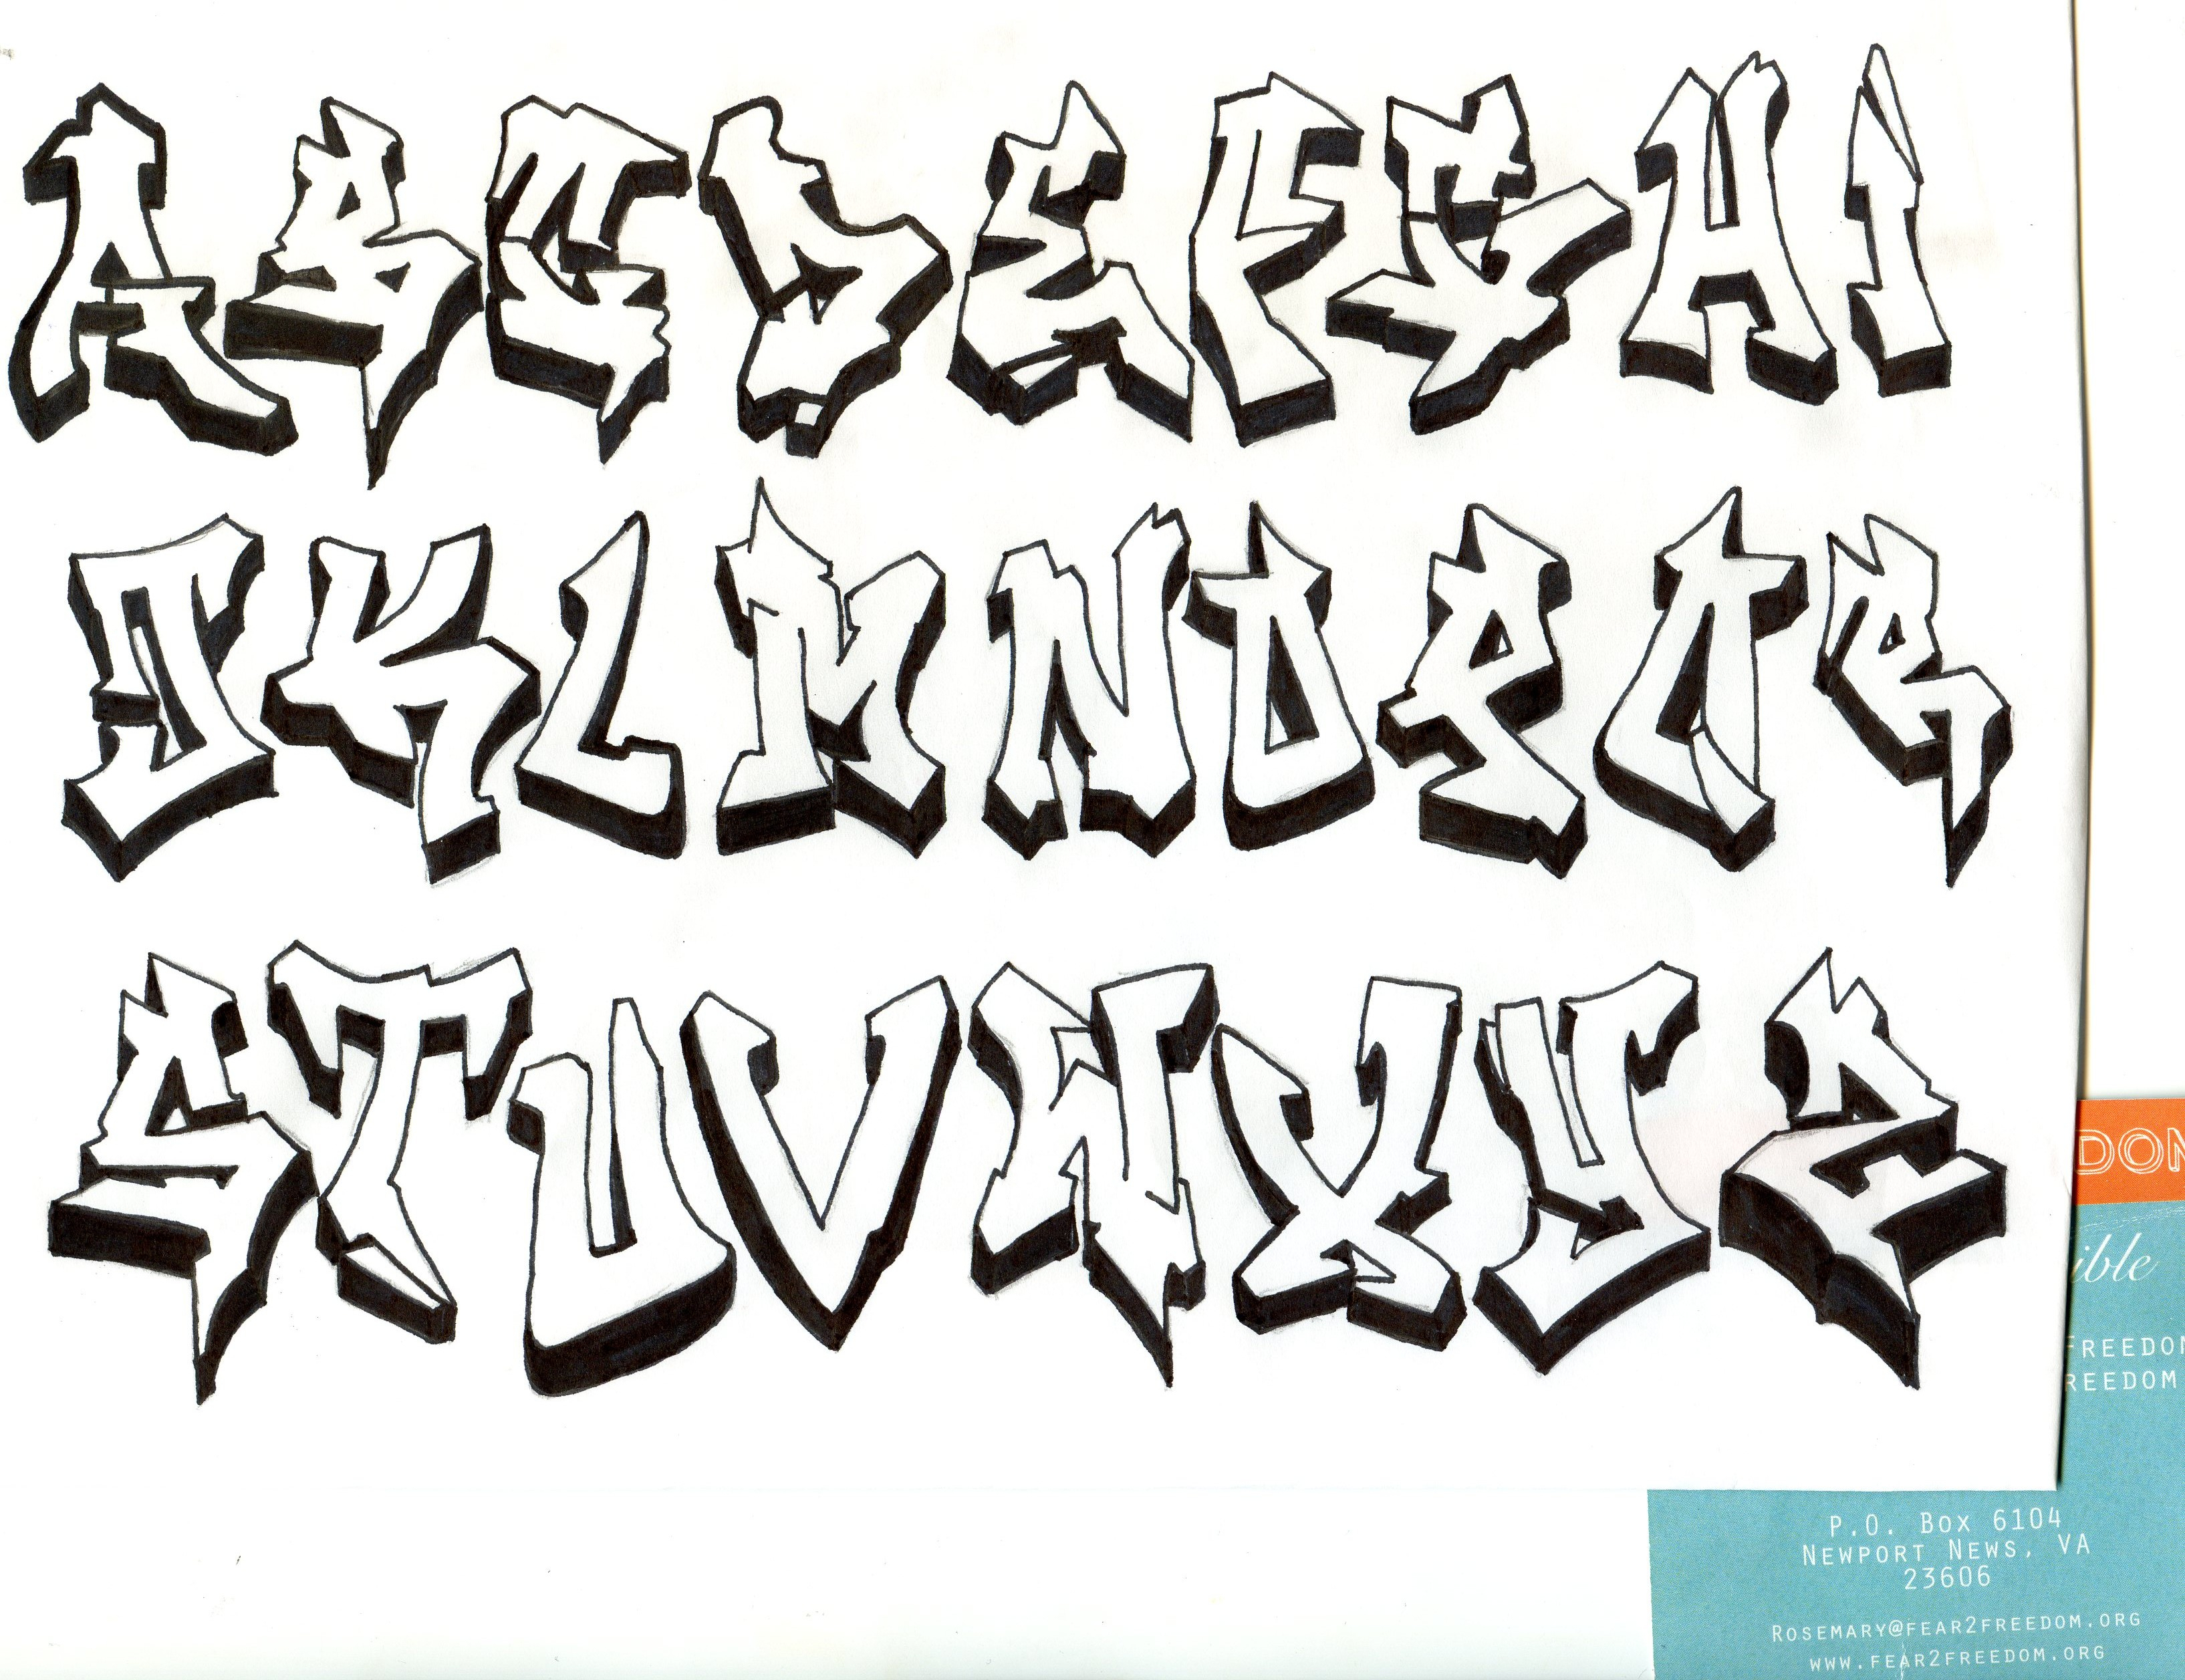 Old english letters drawing at getdrawings free for personal 3269x2514 old english graffiti alphabet letters cool graffiti alphabet altavistaventures